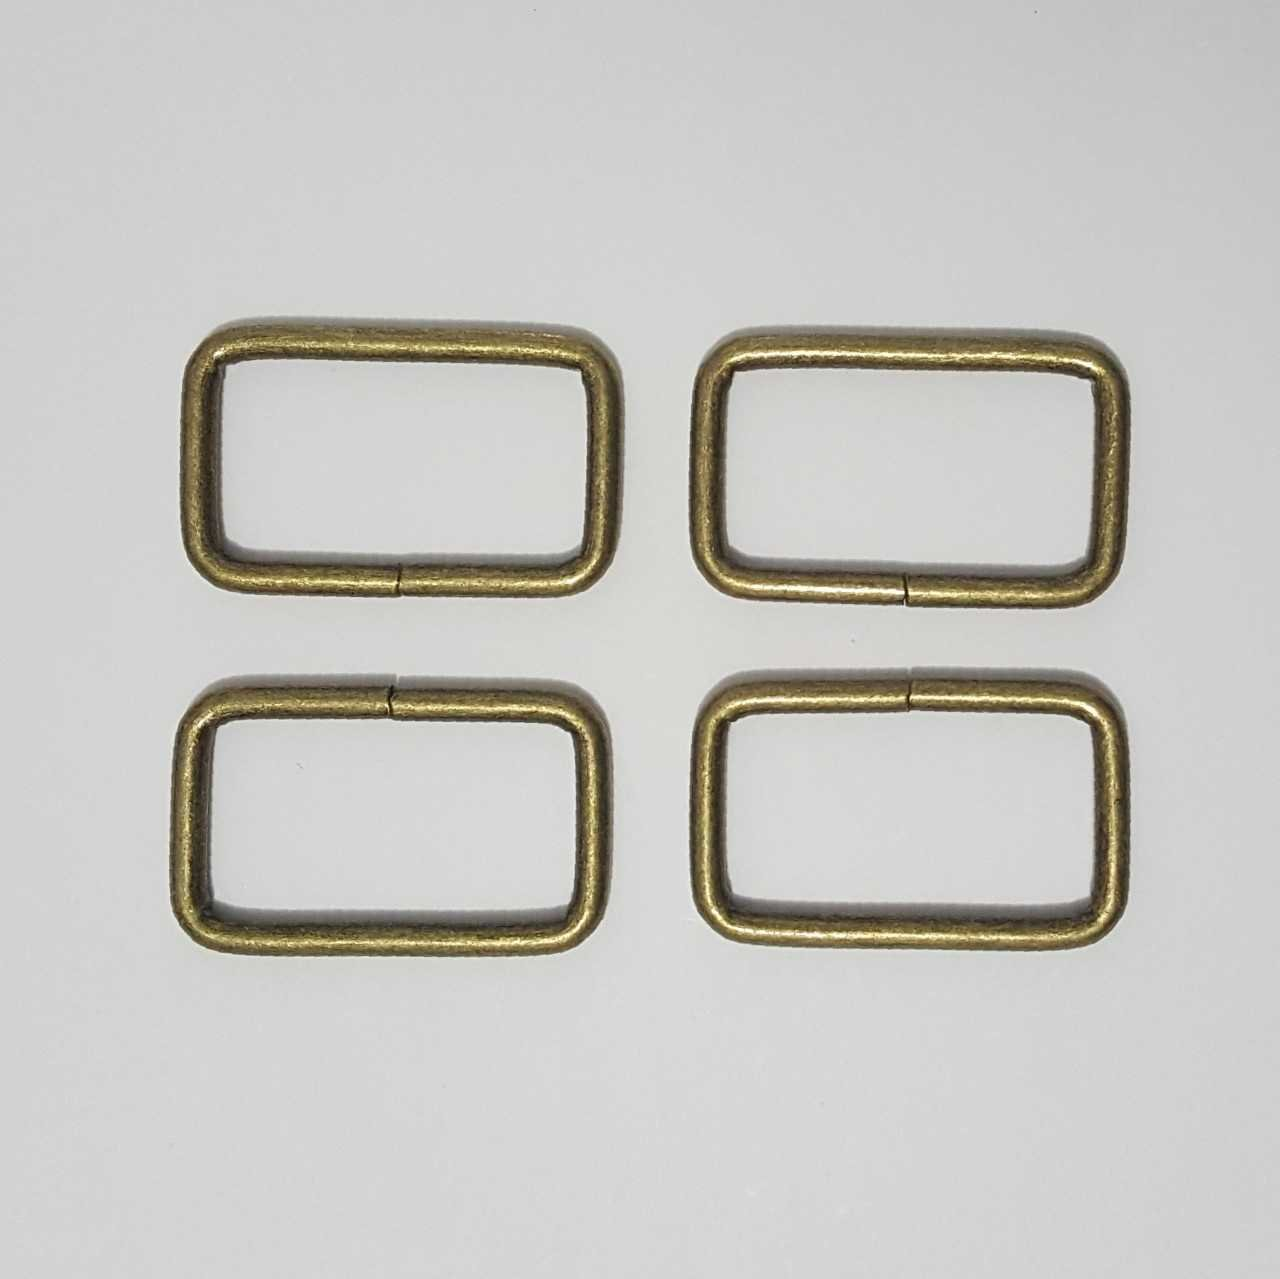 1.5- 4 Rectangle Rings - Brass